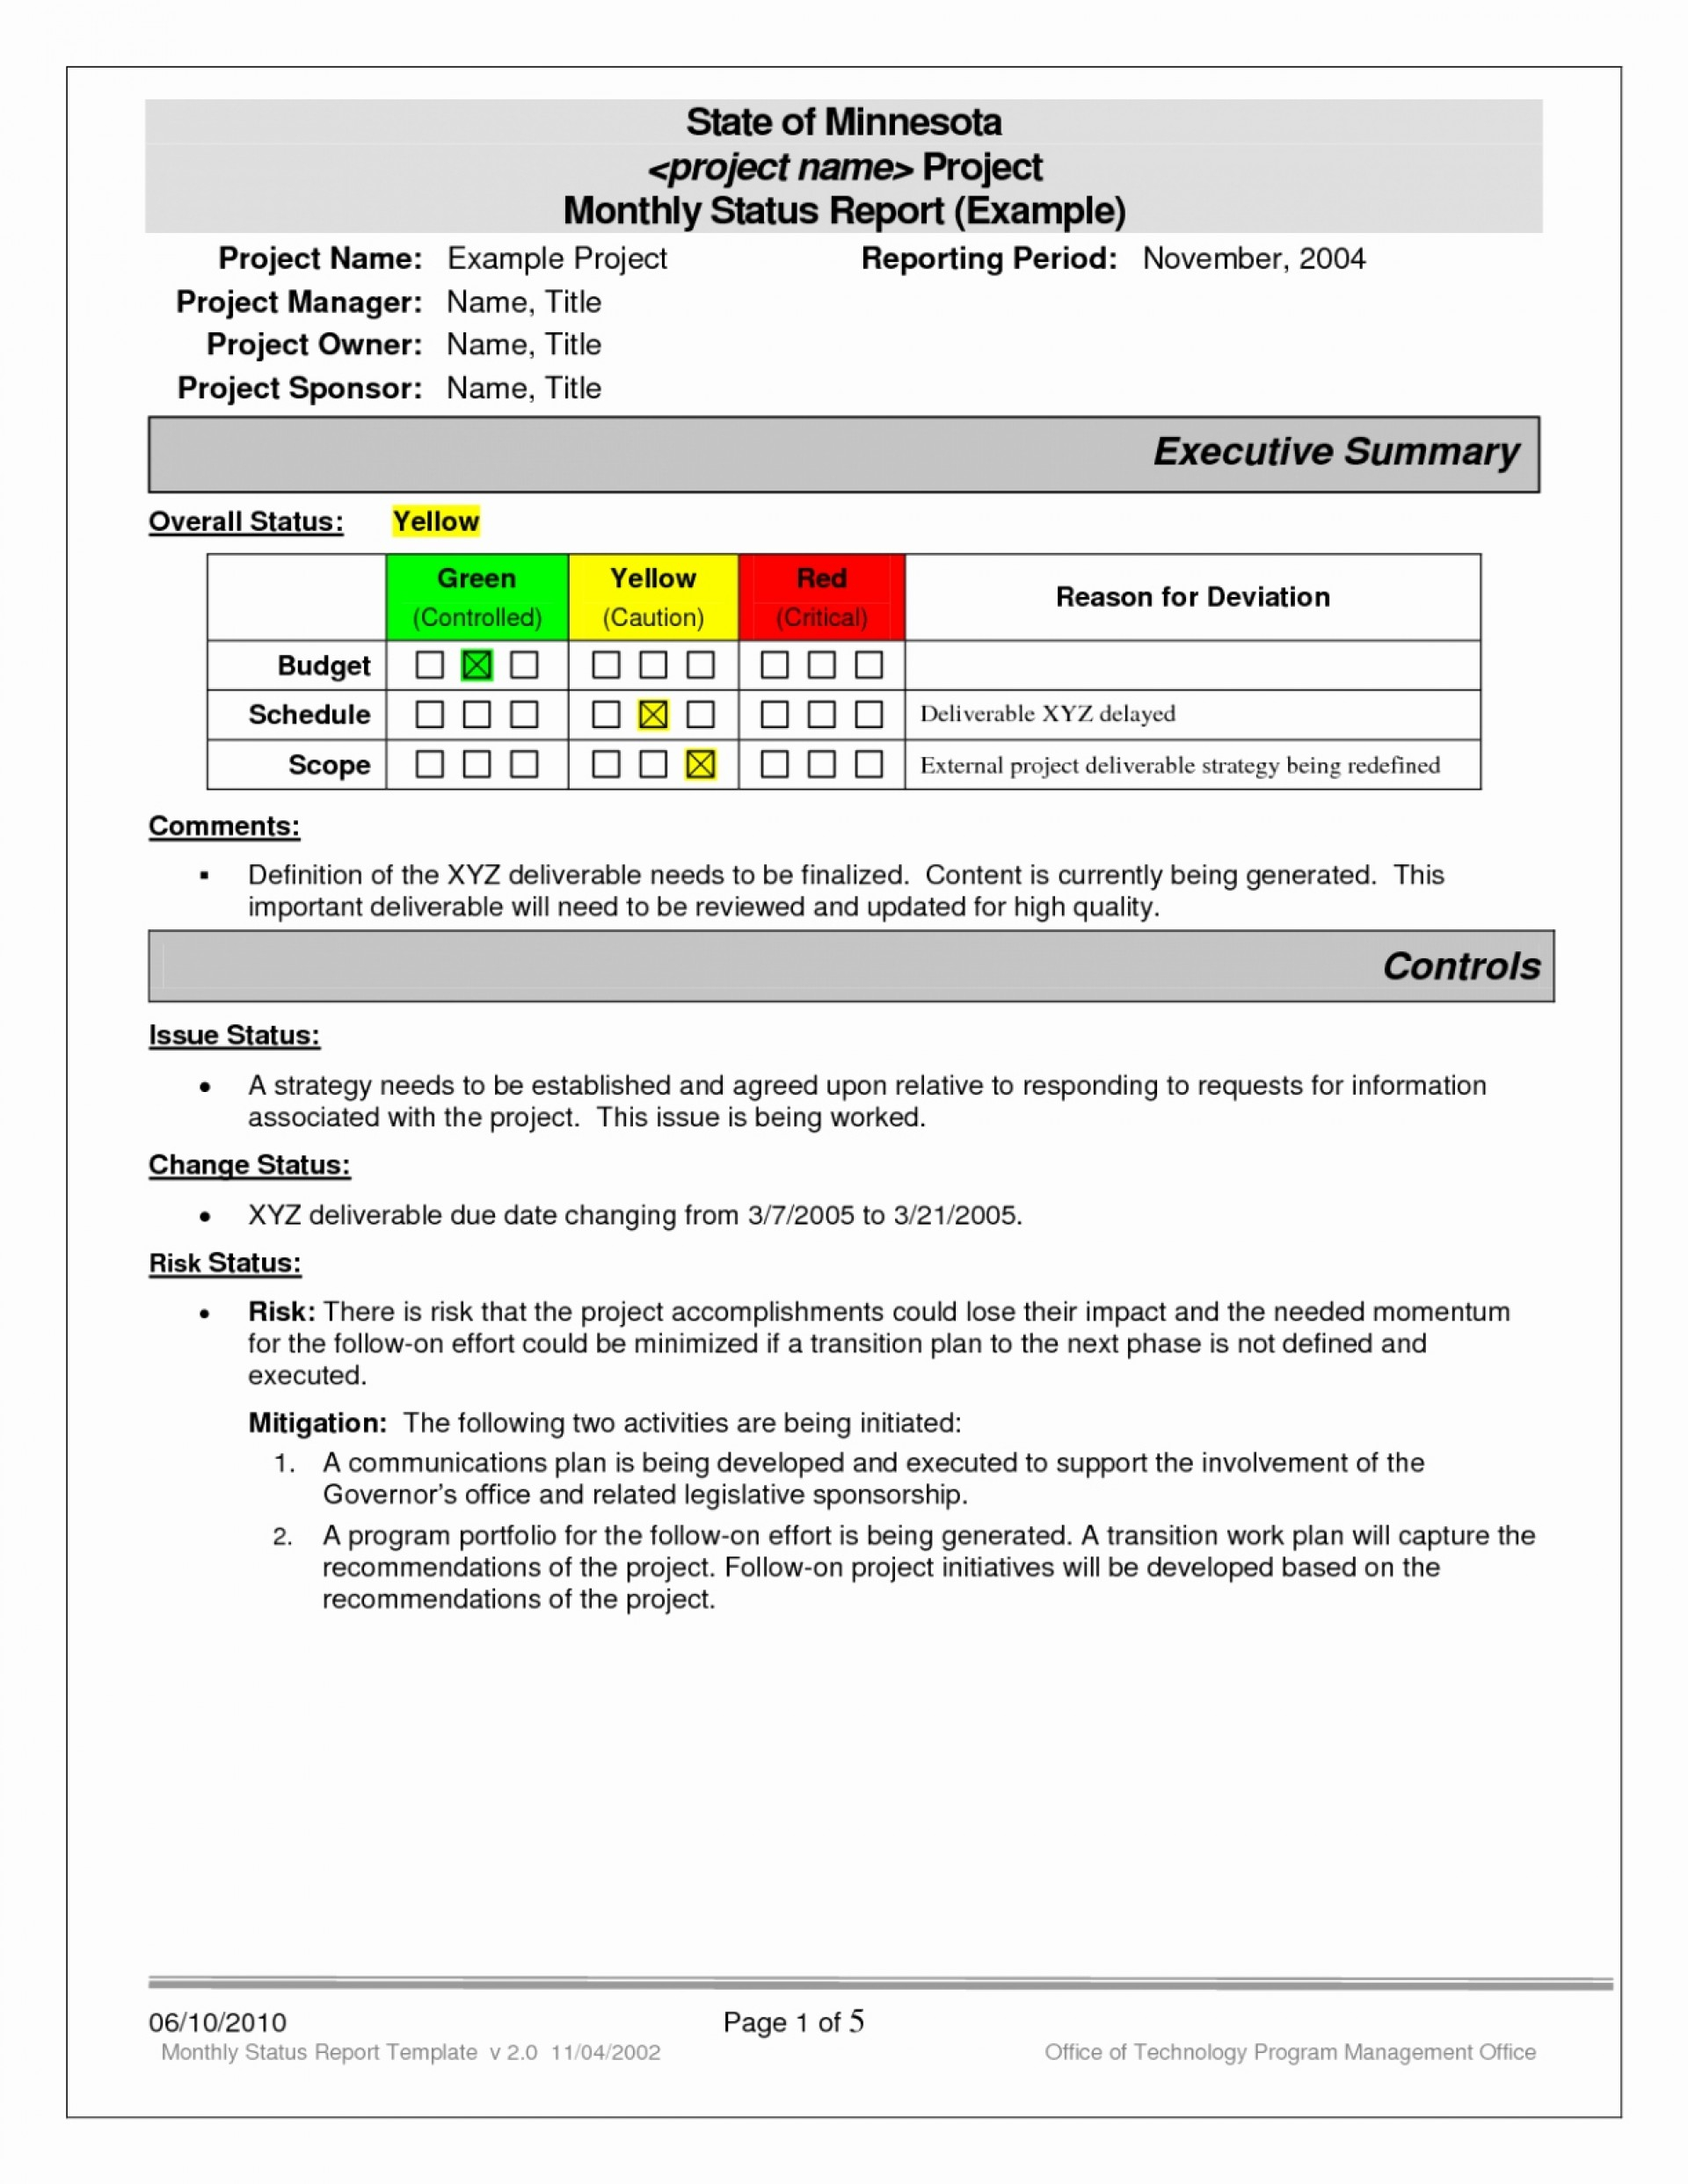 Project Status Report Template Excel Software Testing Awesome Pertaining To Project Monthly Status Report Template